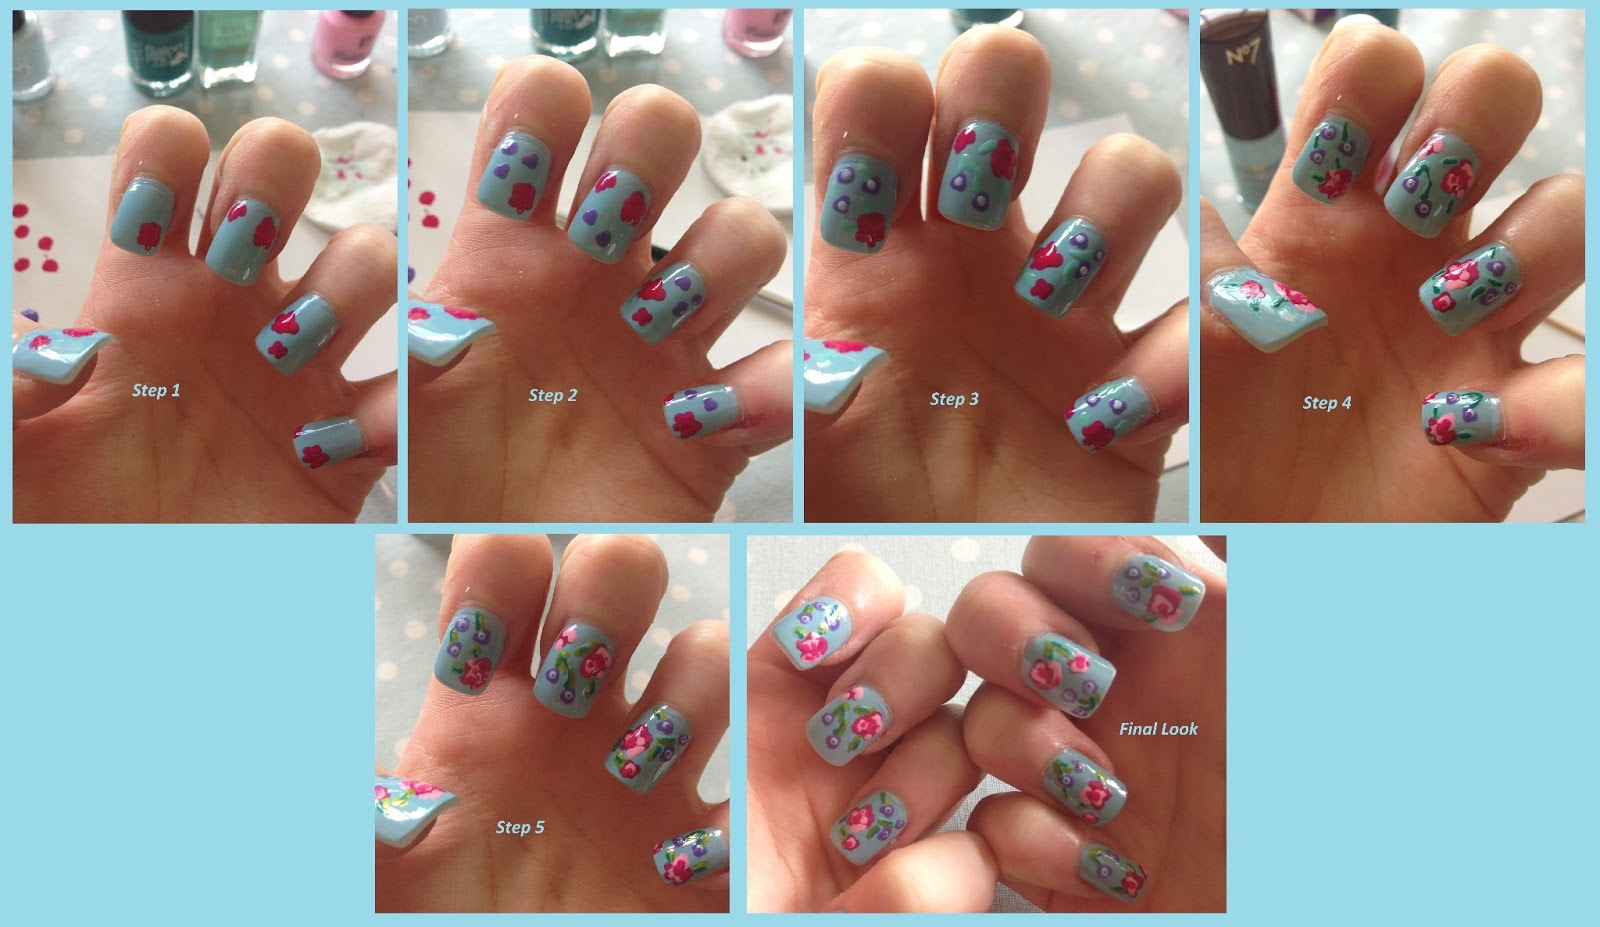 Step By Step Nail Art Instructions Step by step guide.